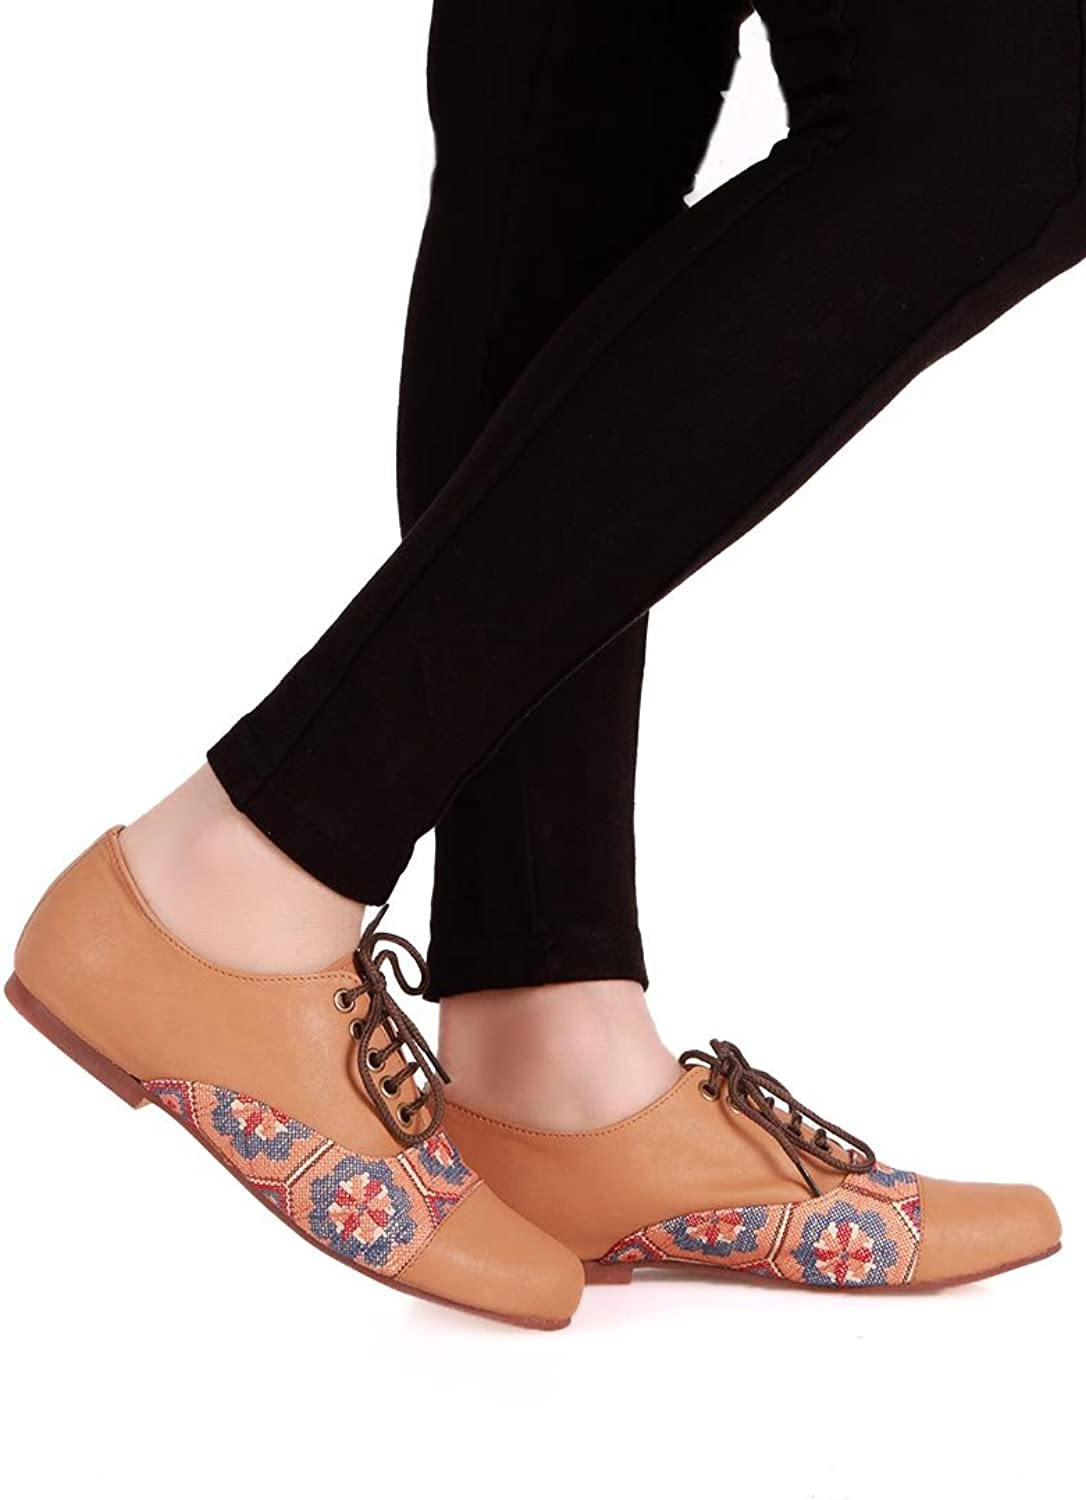 Tjori Beige & Multicolor Mgoldccan Embroidered Oxford shoes